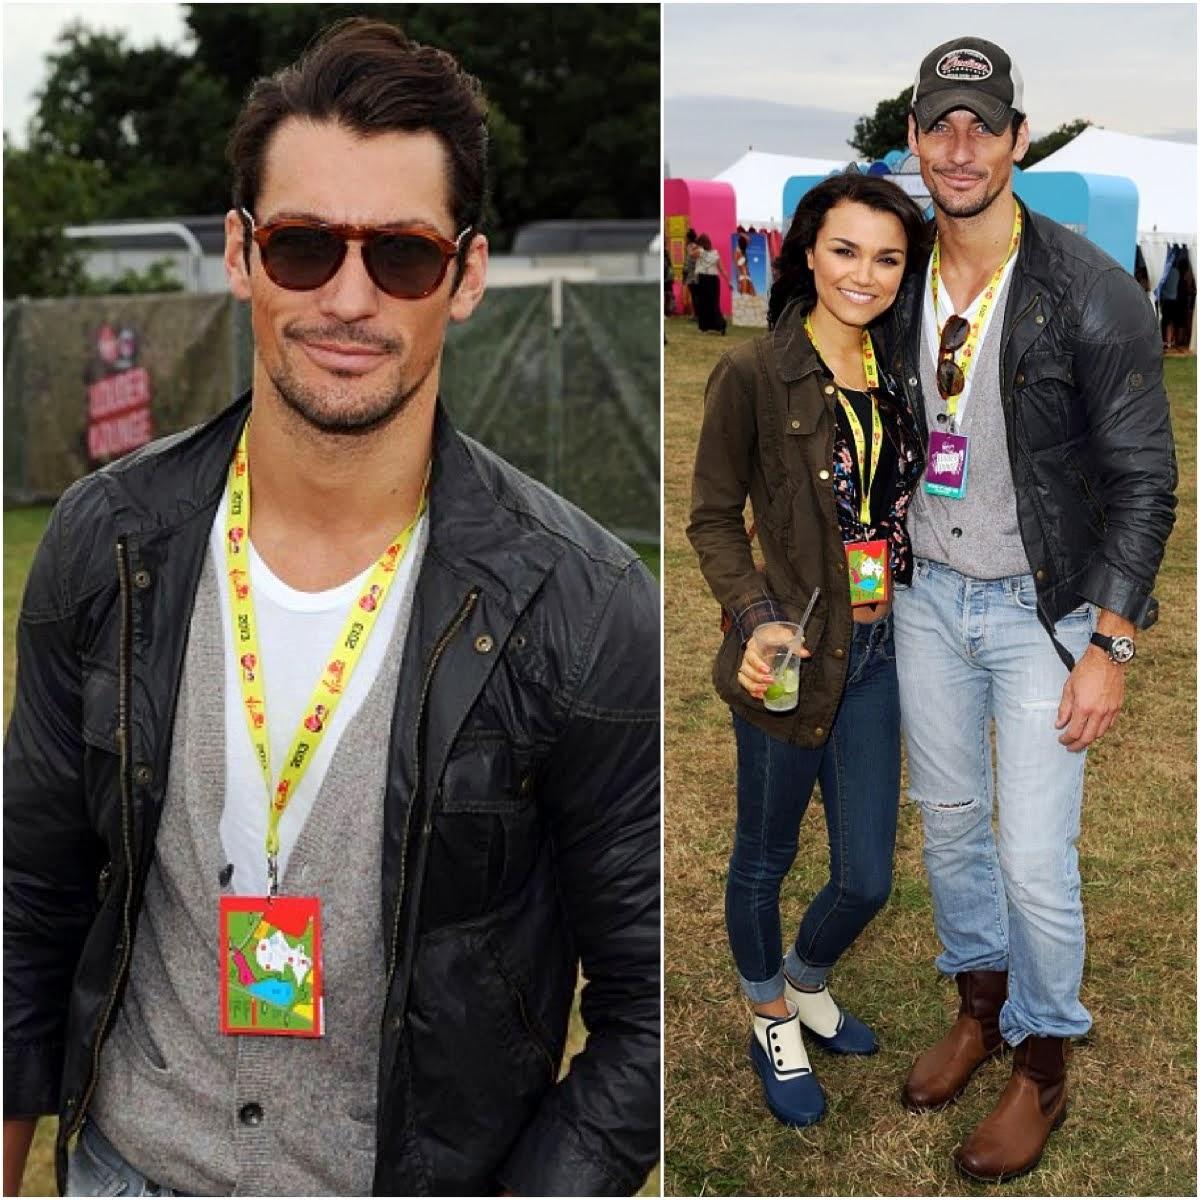 00O00 Menswear Blog: David Gandy's Belstaff 'S Icon' jacket - V Festival 2013